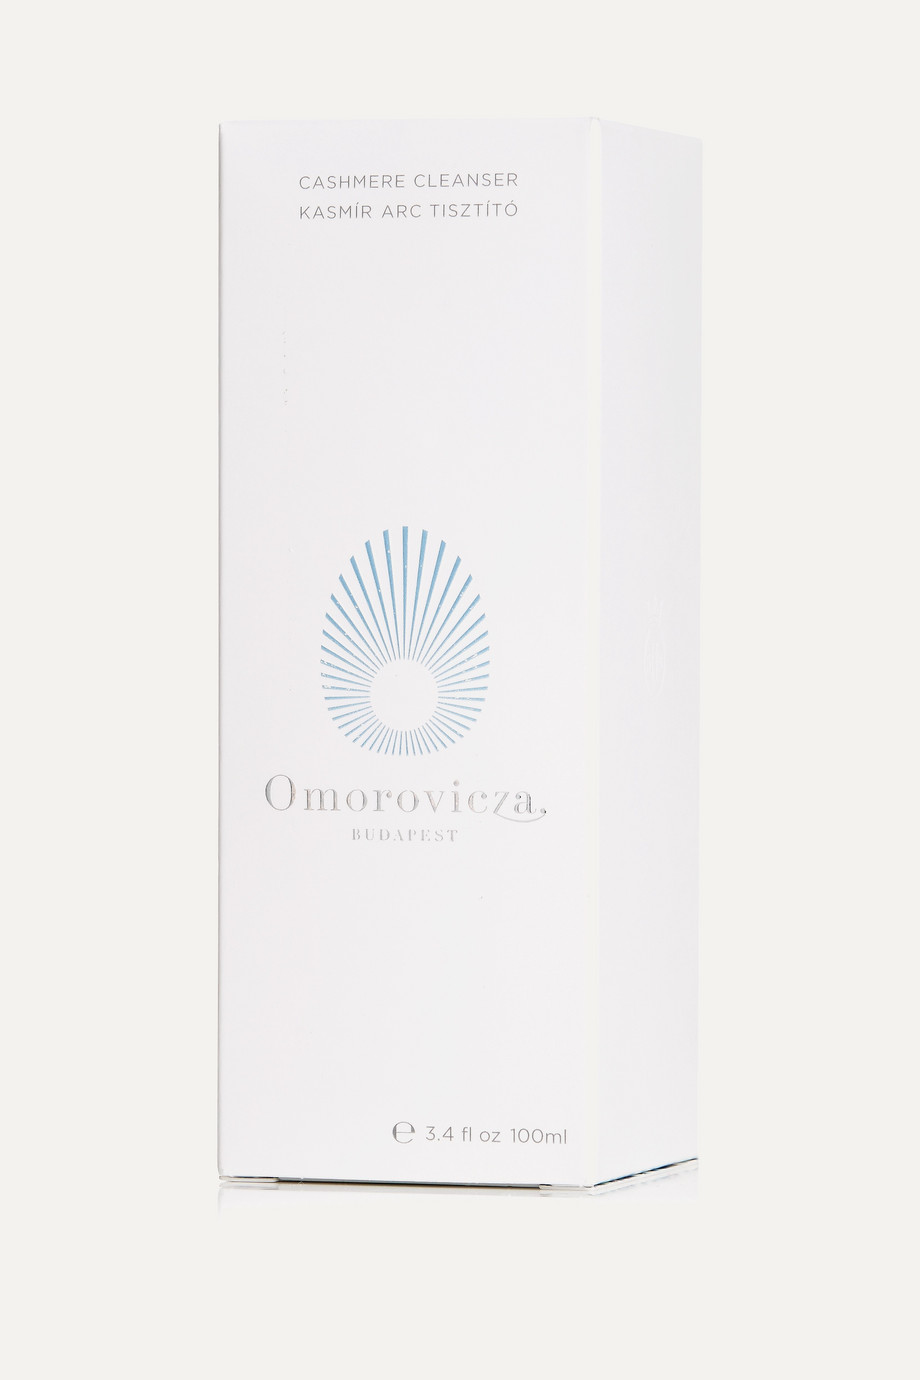 Omorovicza Cashmere Cleanser, 100ml